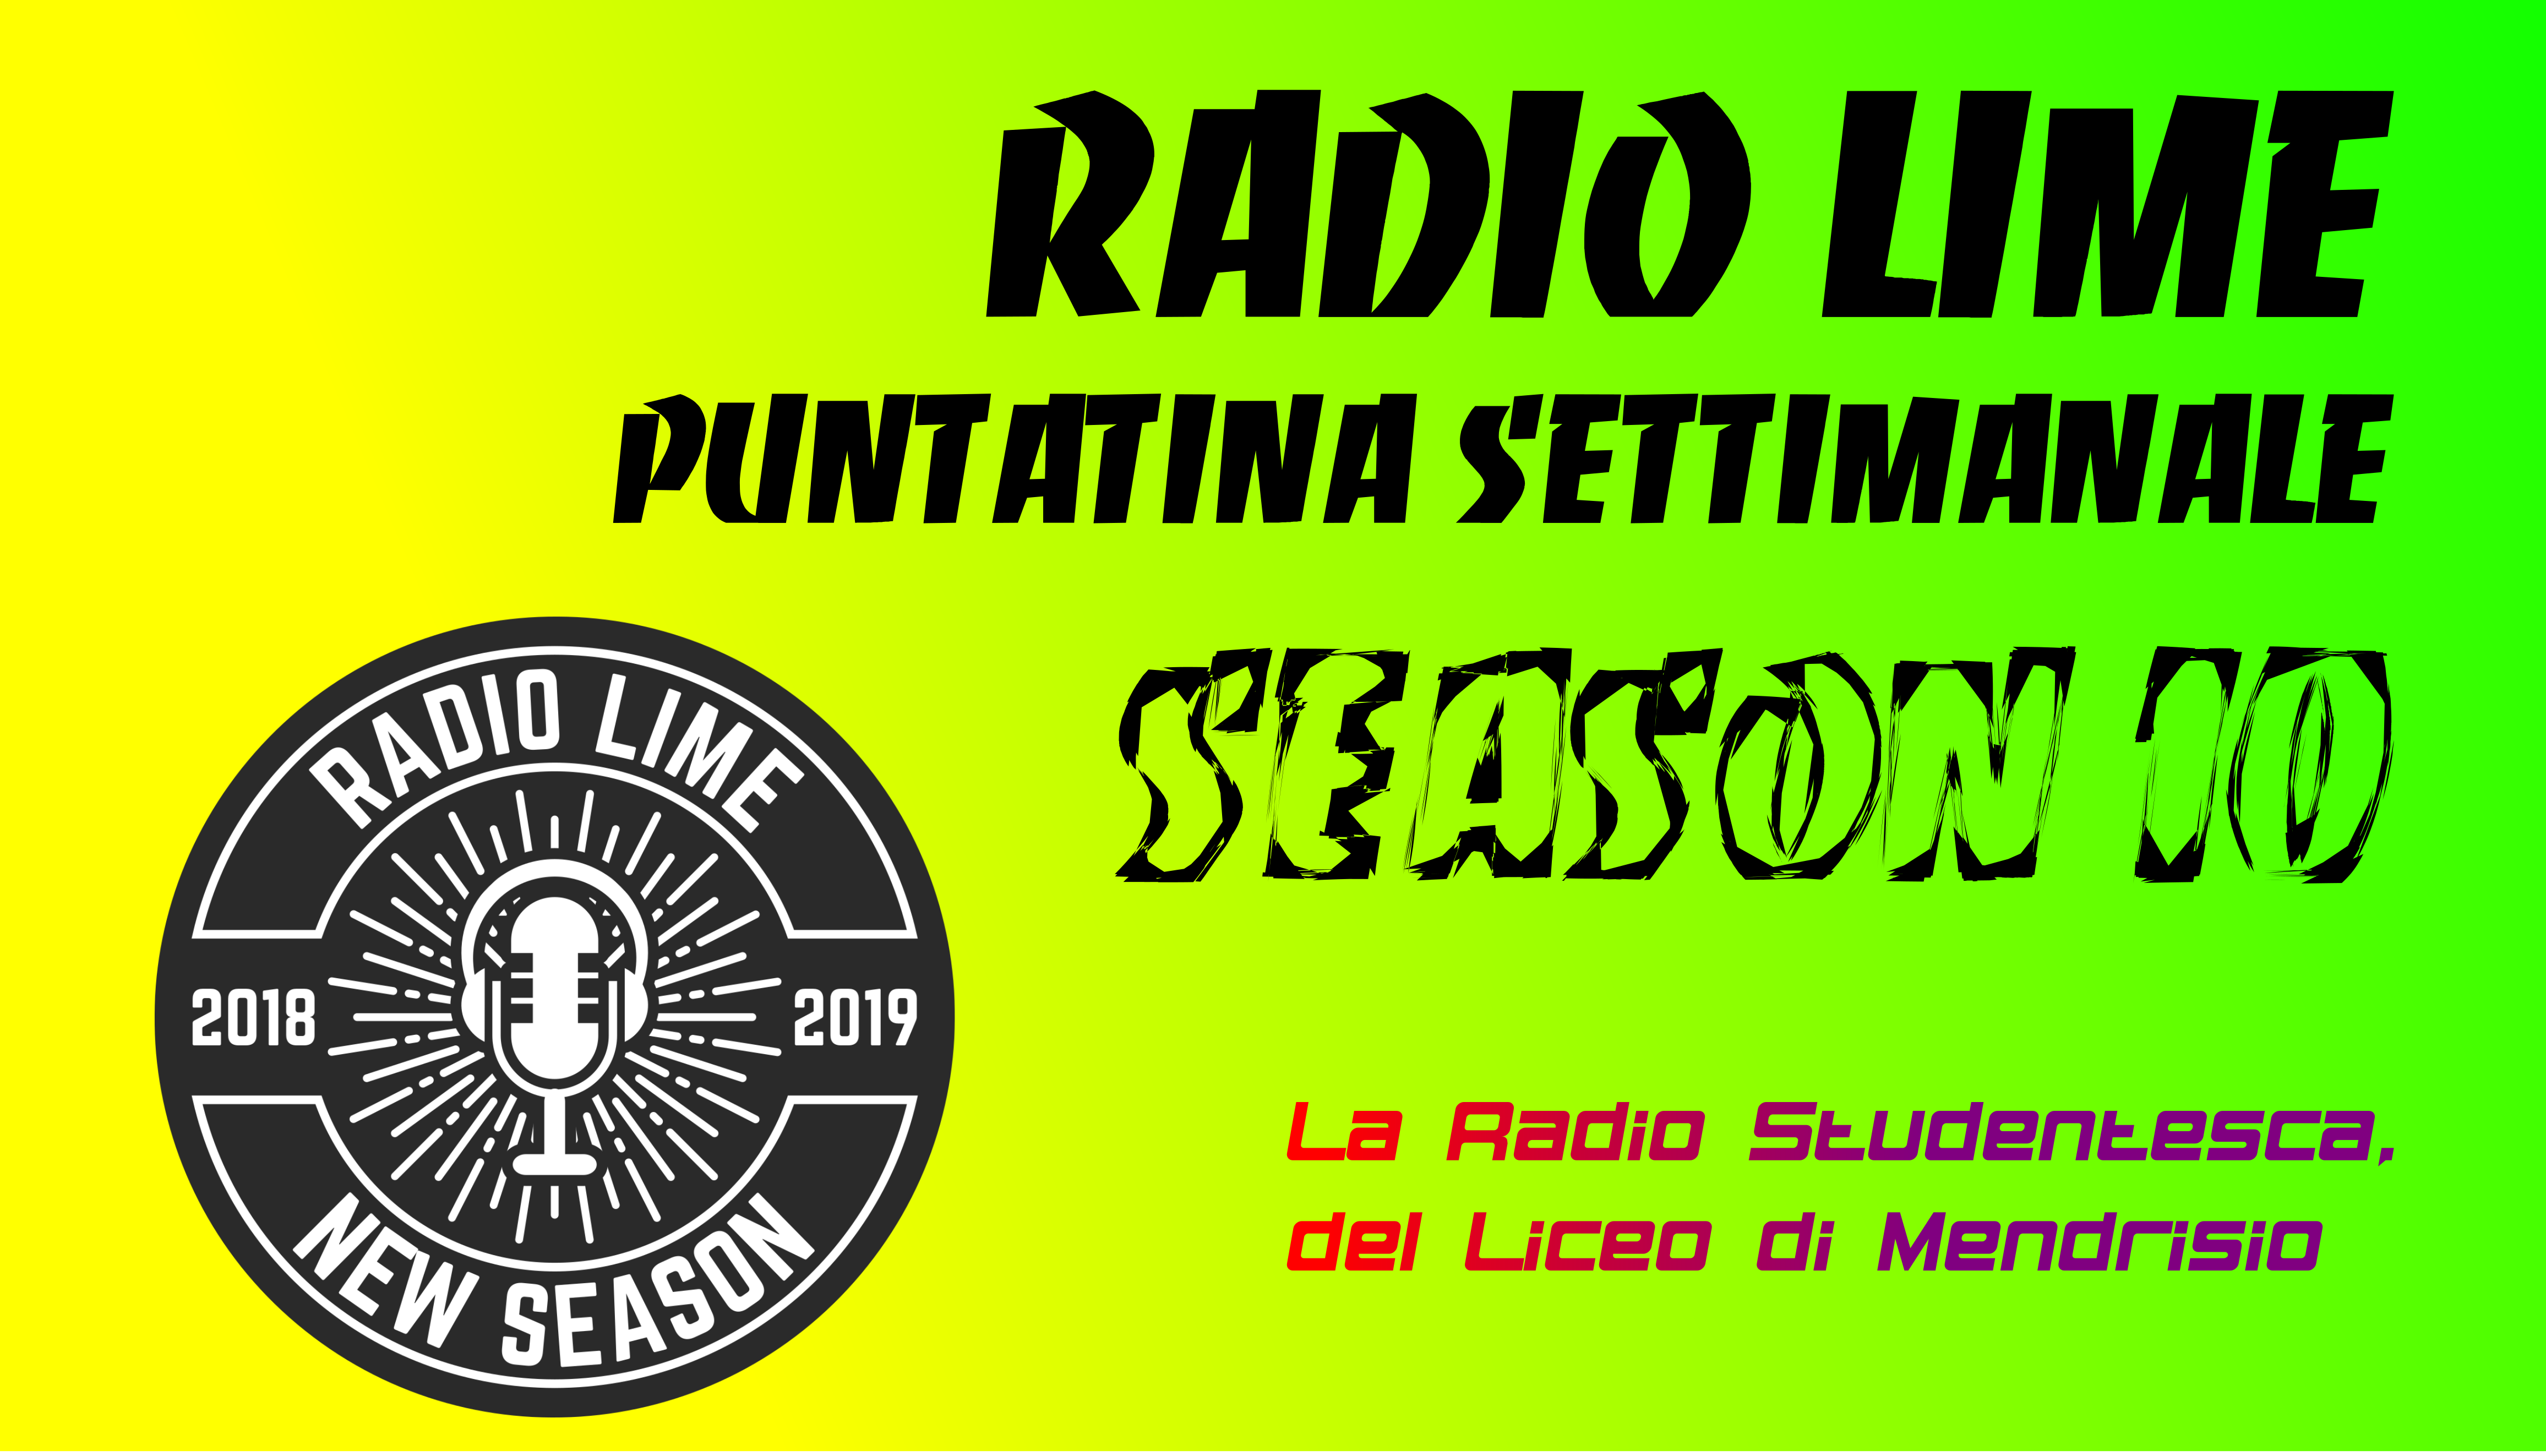 Laptop Radioing Session LiMe - 13/09/2018